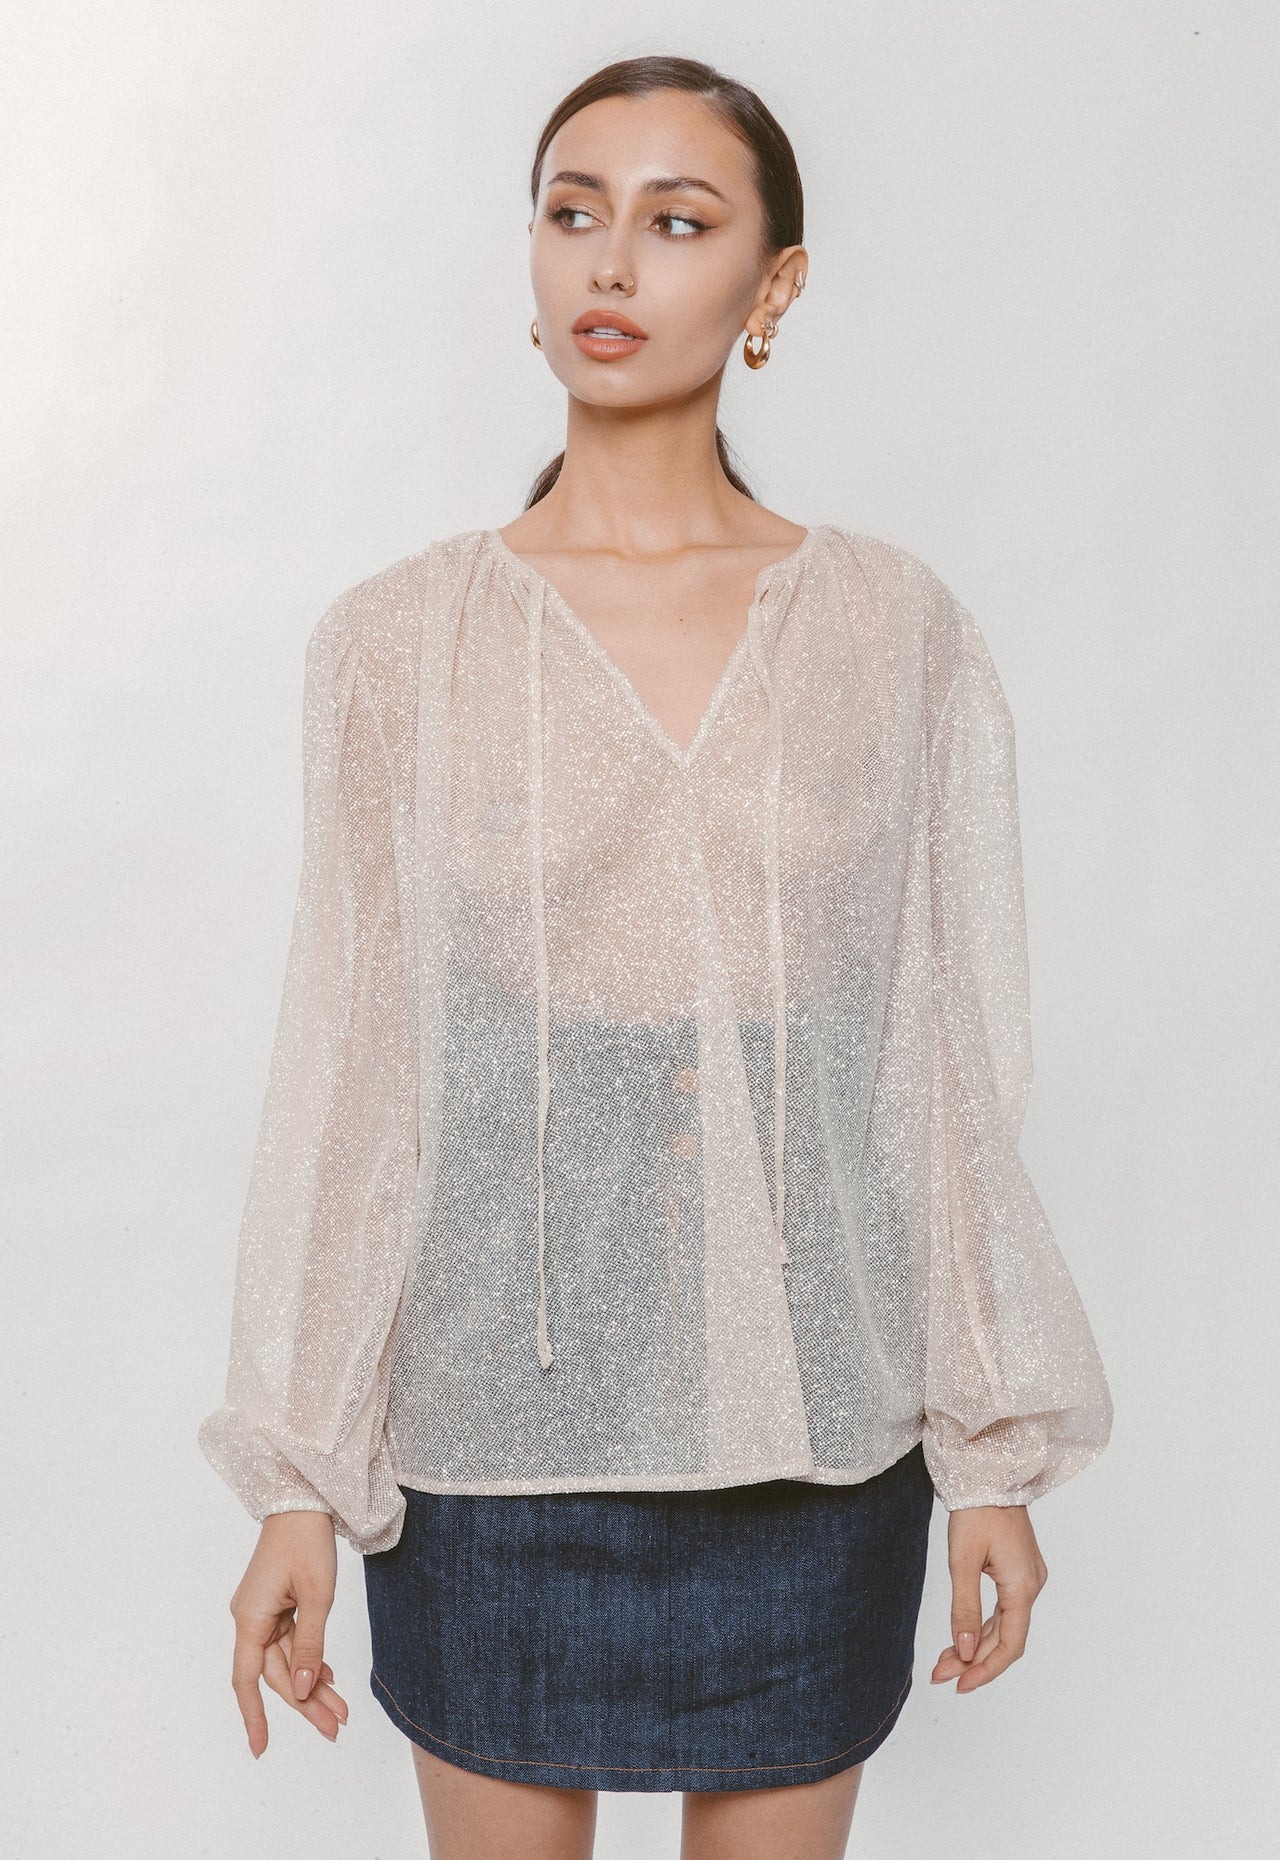 SPARKLY TULLE BLOUSE - Lurelly